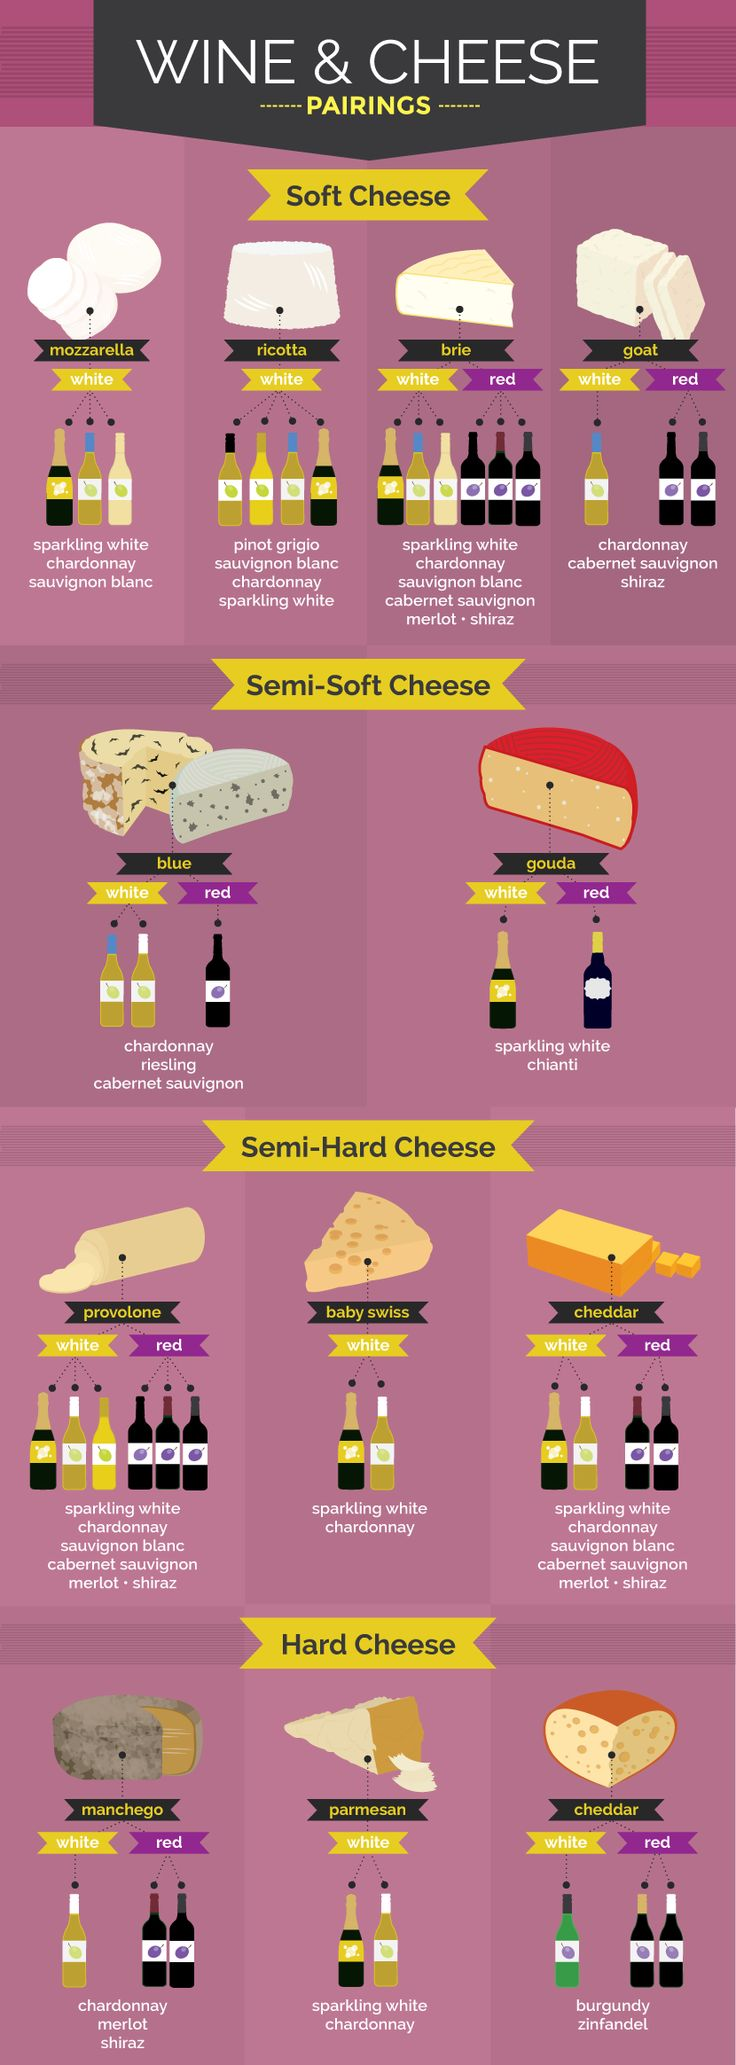 The best pairings for wine and cheese